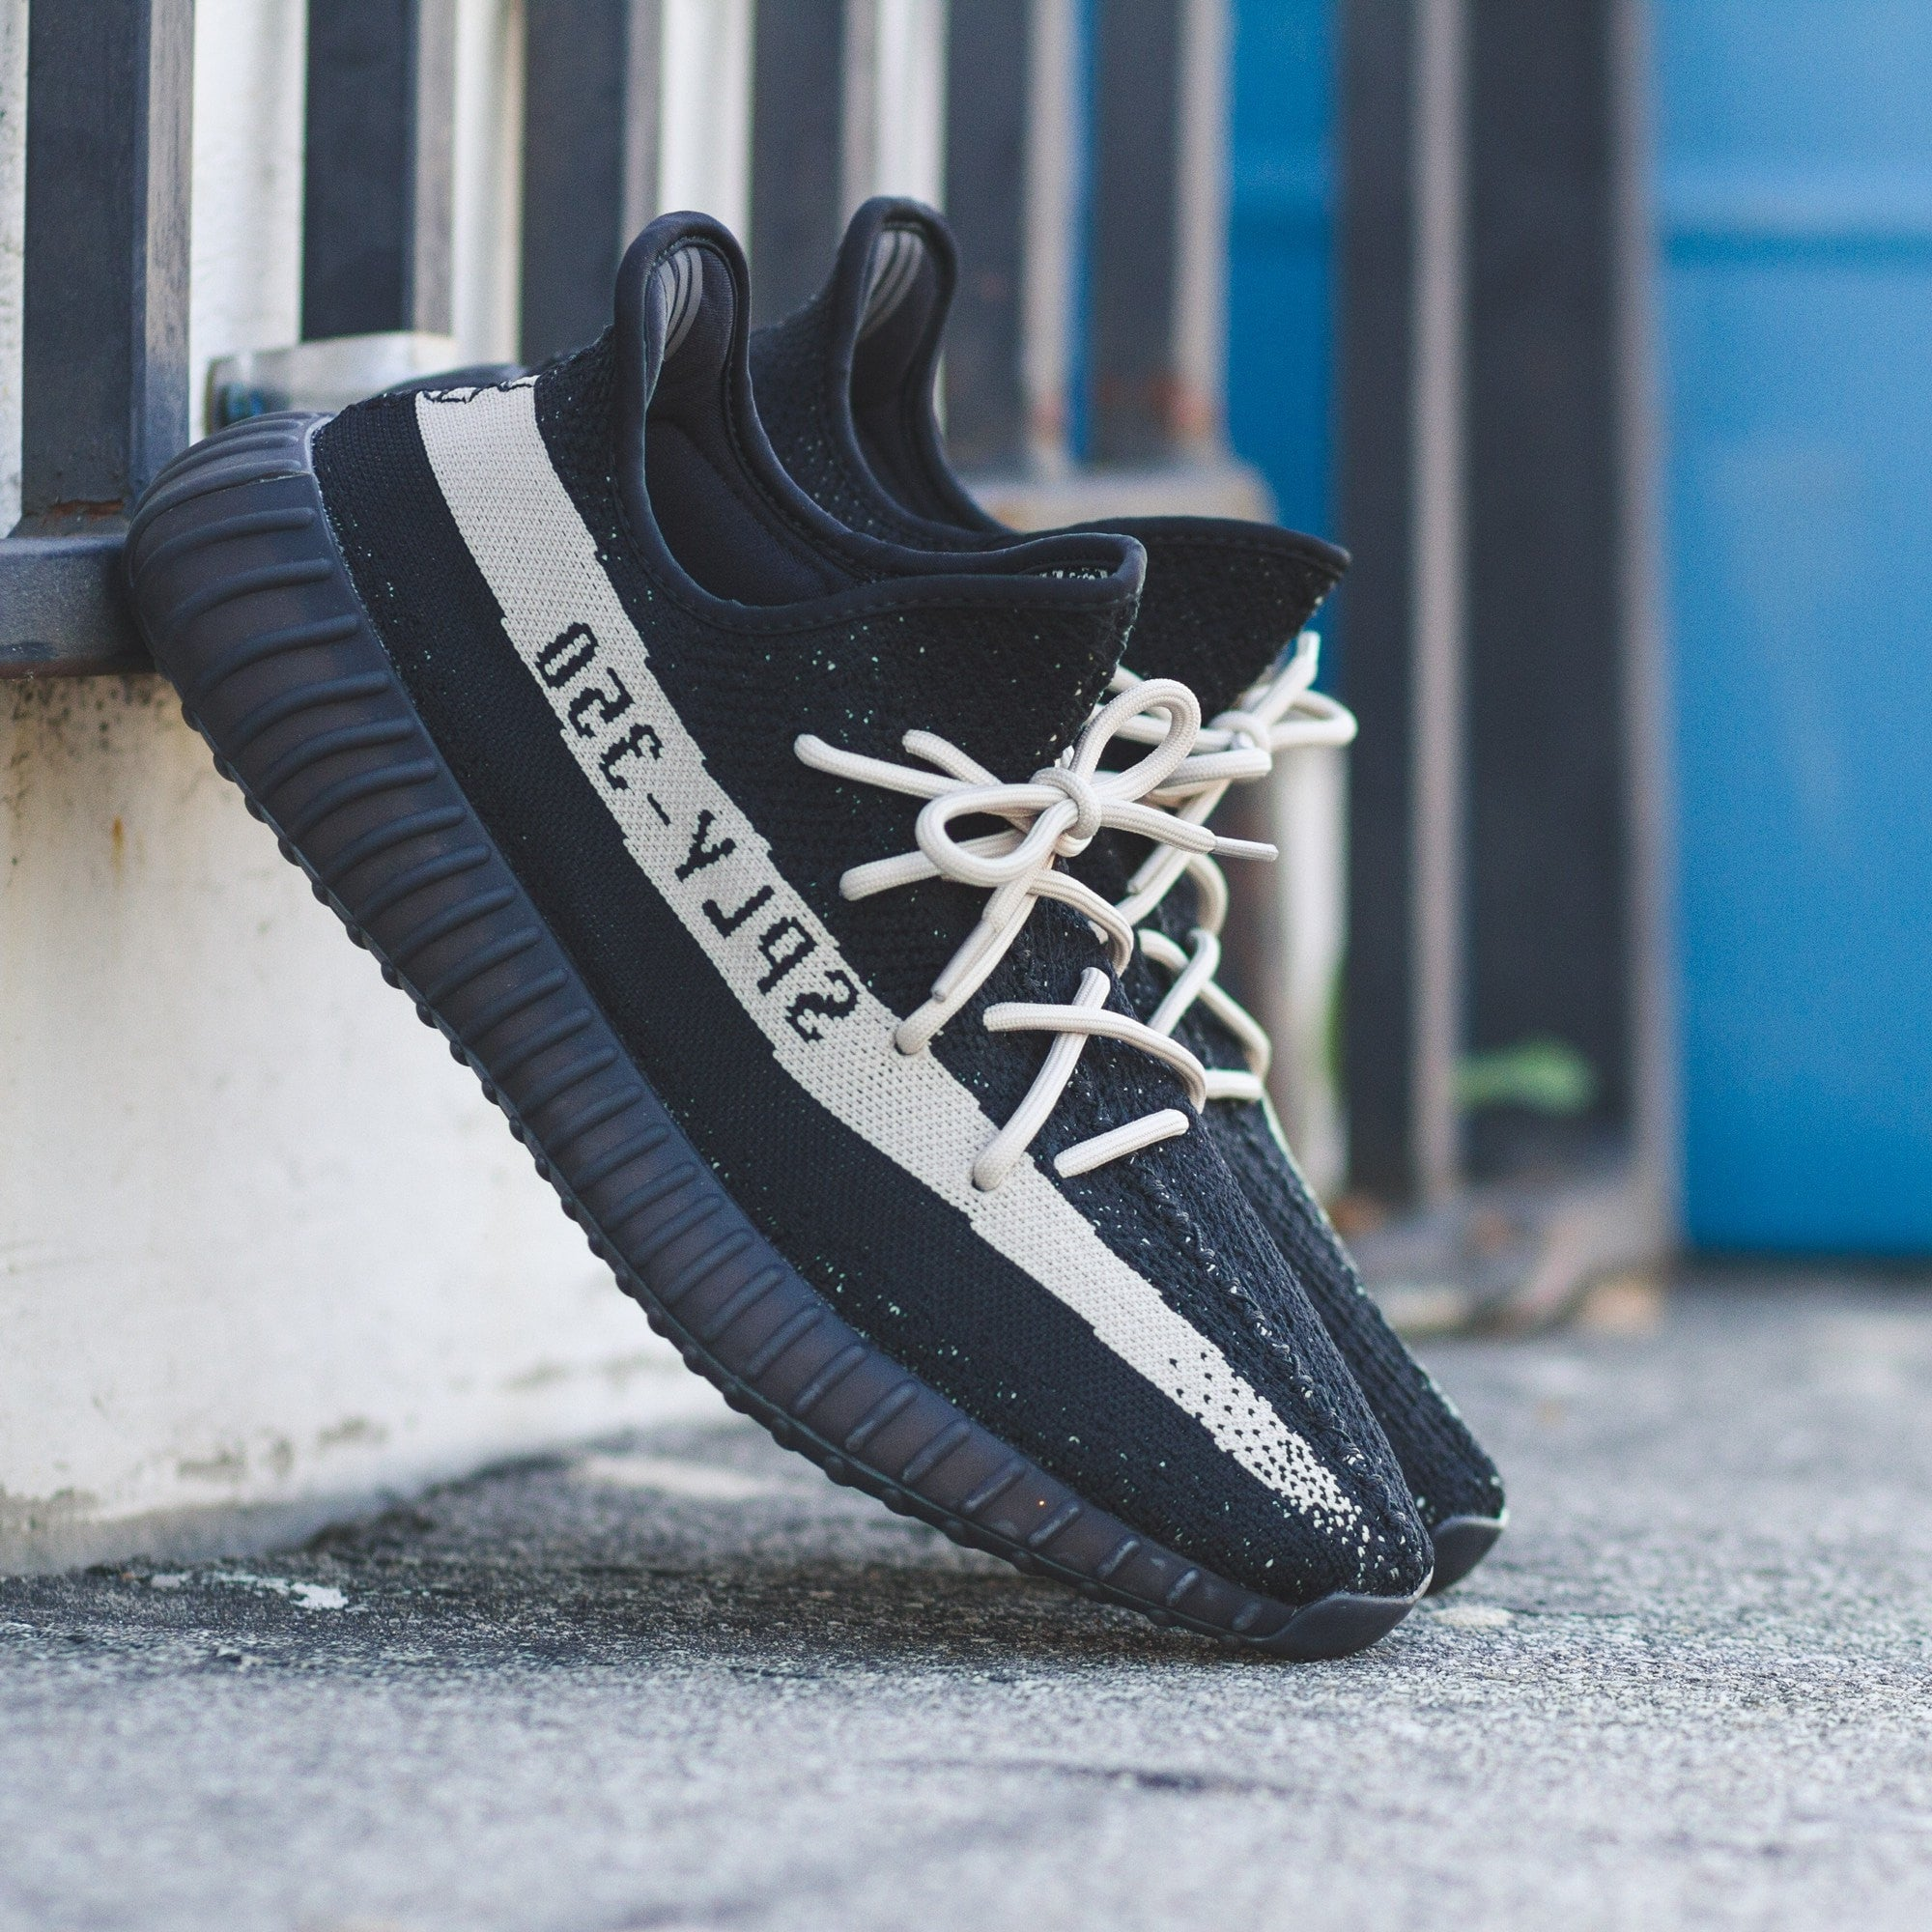 12c3cd0ec Yeezy 350 Boost v2 Oreo lace swap using our 45